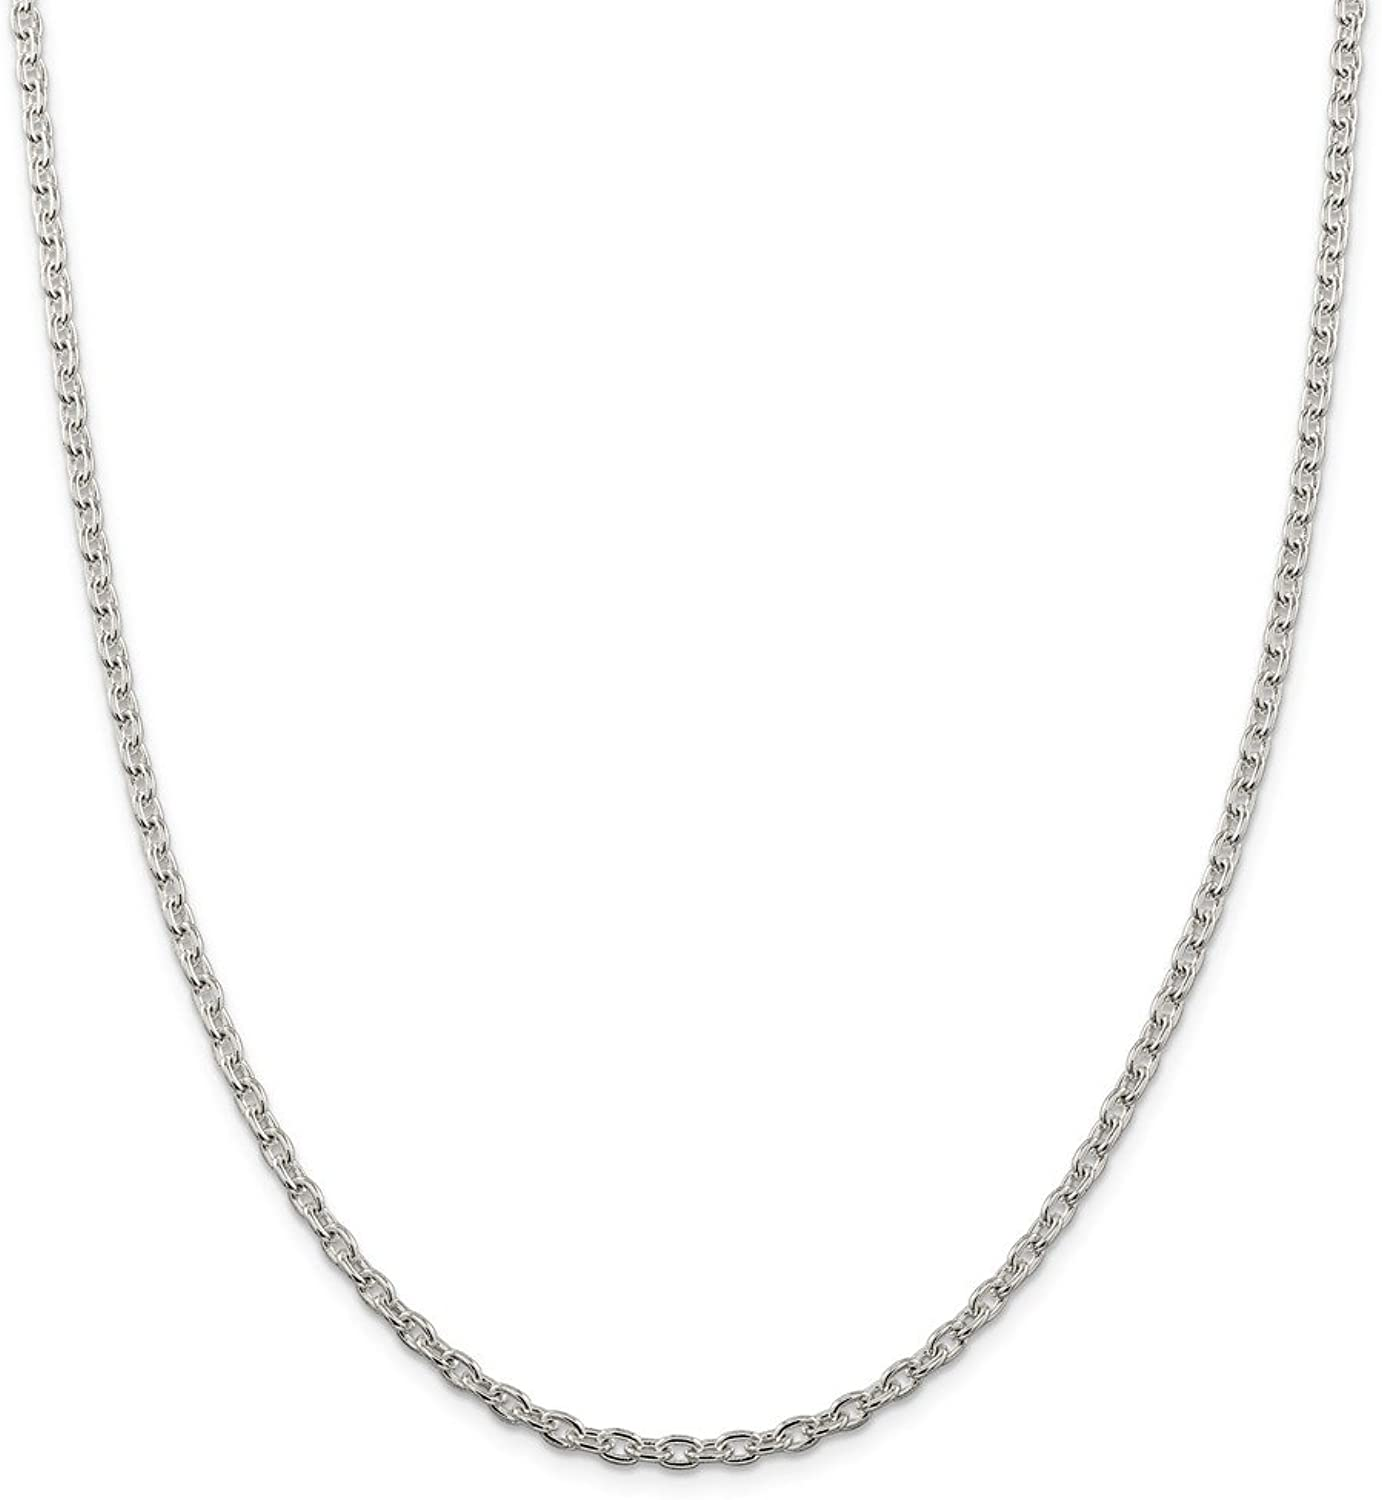 Beautiful Sterling silver 925 sterling Sterling Silver 3.5mm Cable Chain